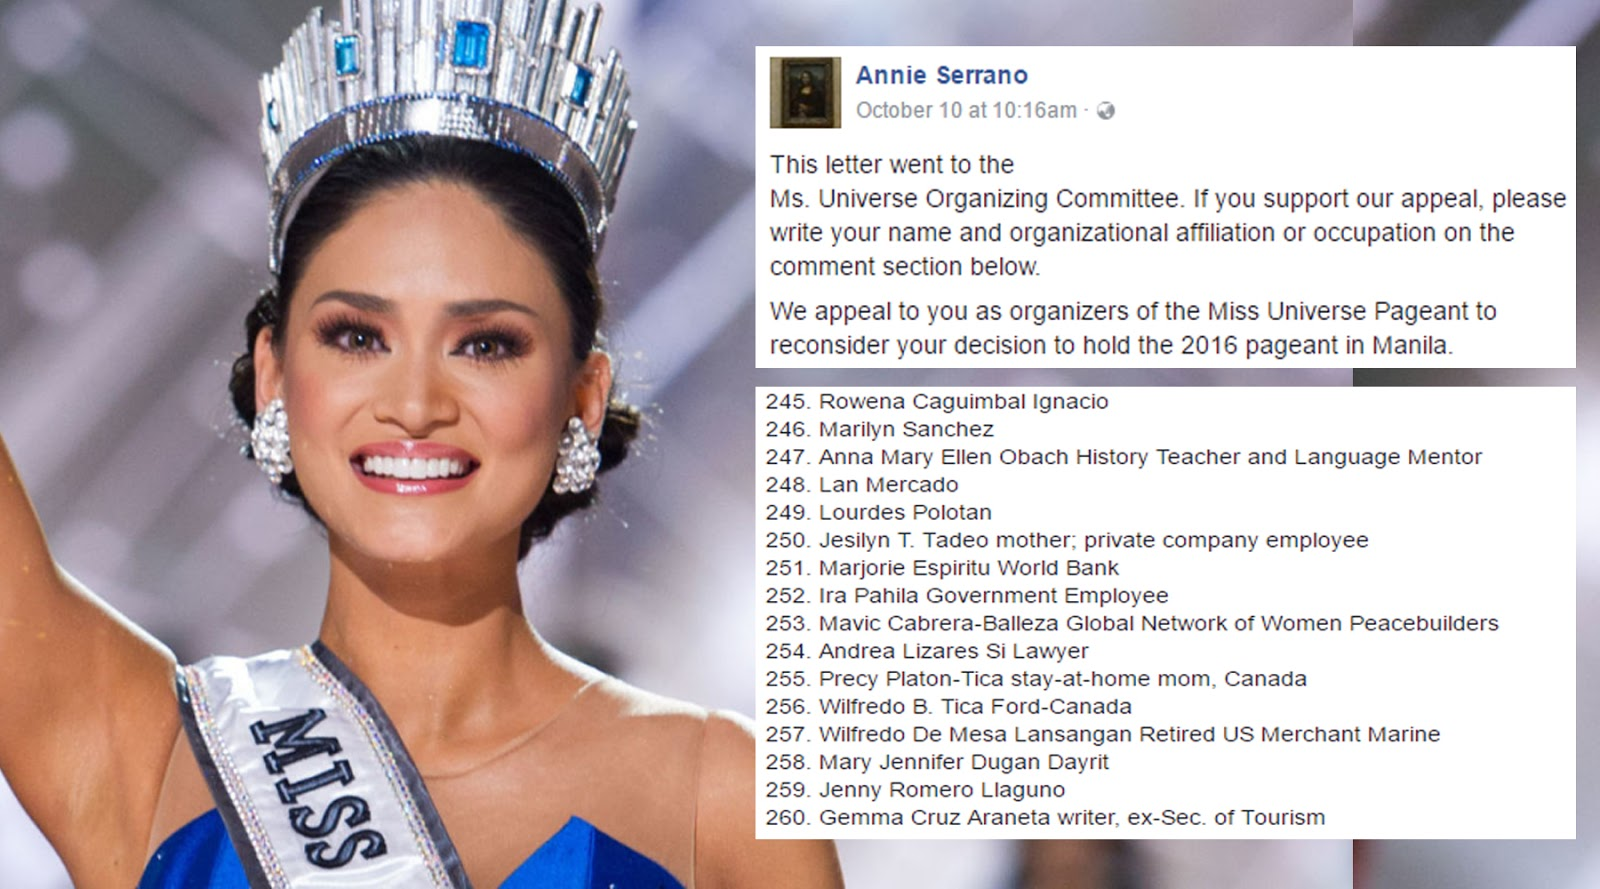 LOOK: Complete list of people who signed the 'Stop Miss U